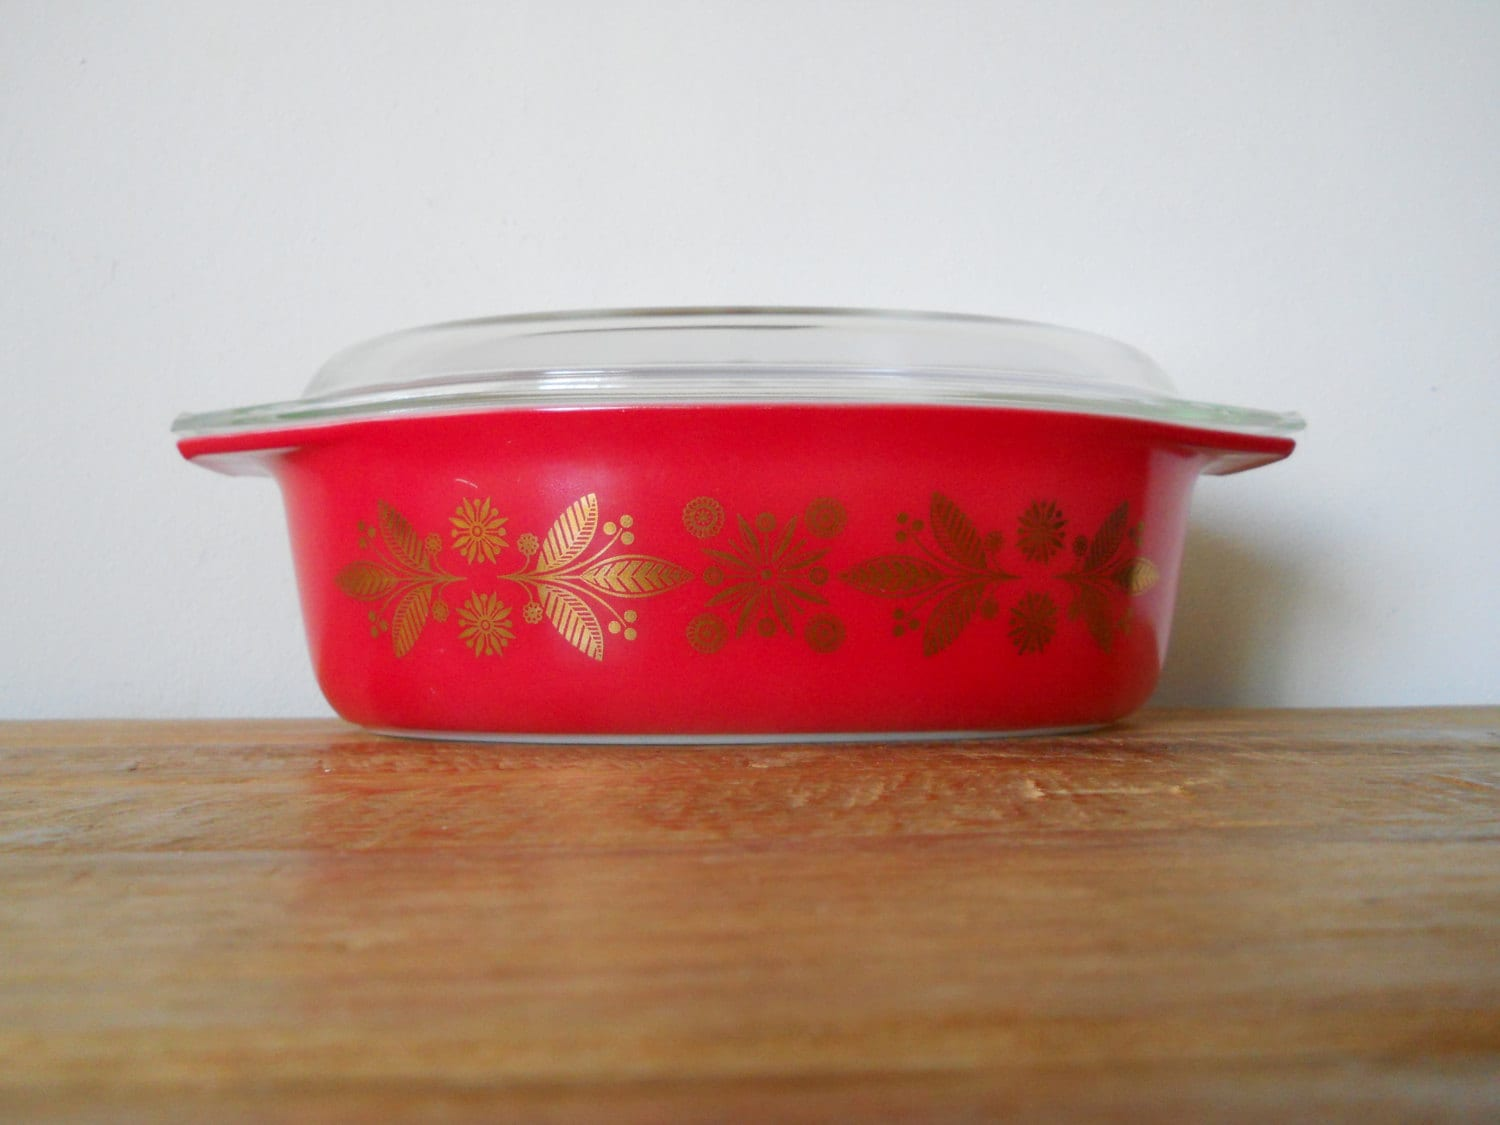 Rare Vintage Pyrex Christmas Baking Dish In Red And Gold